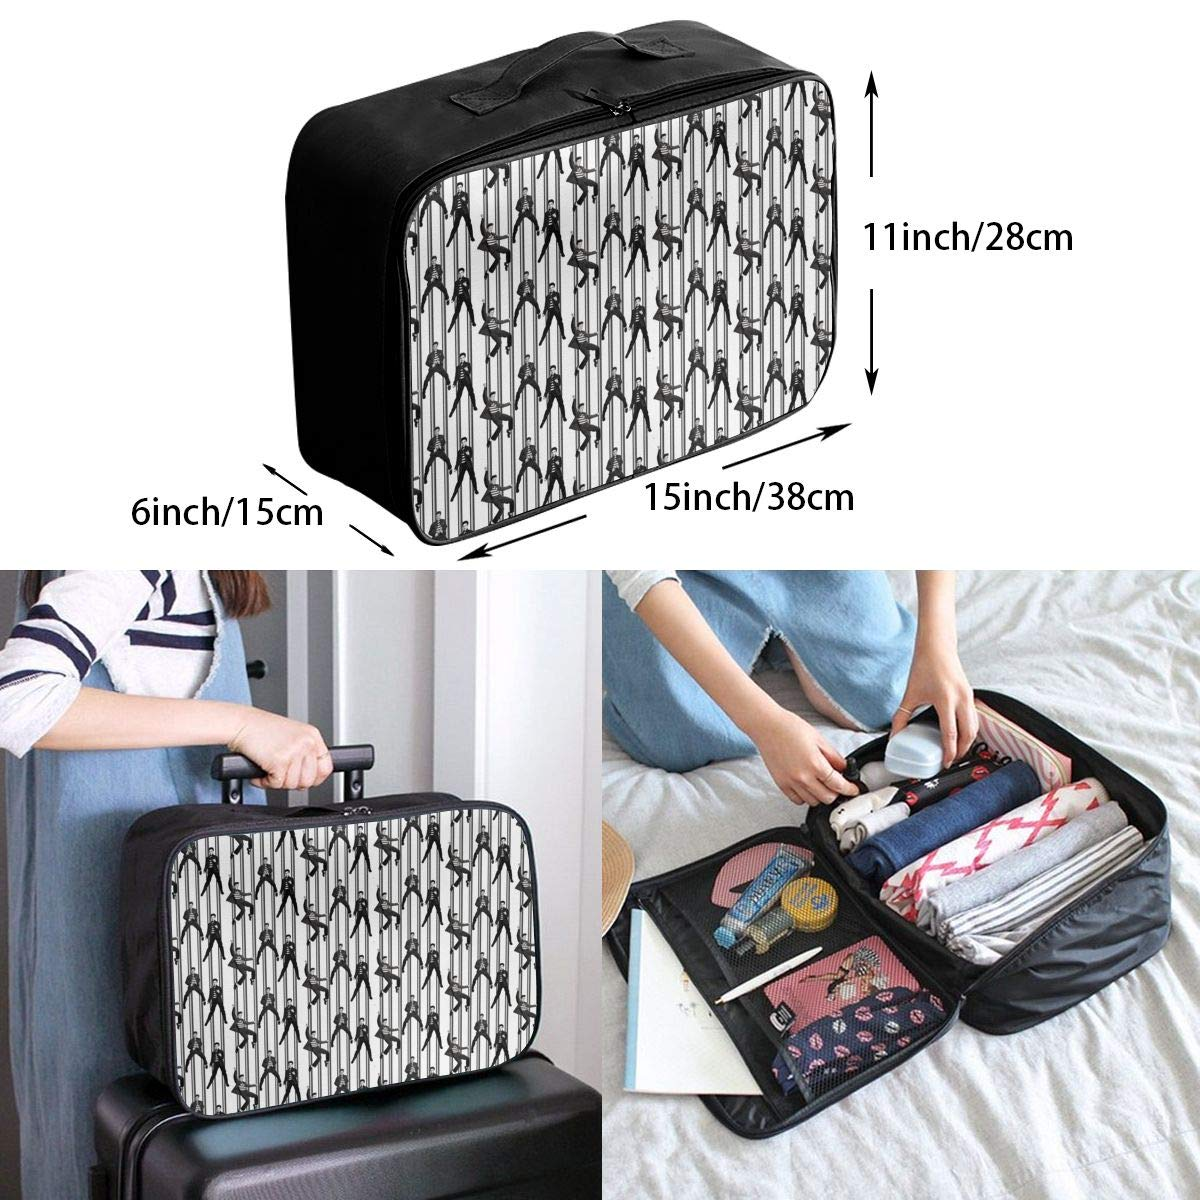 473e3baa9422 Portable Luggage Duffel Bag Elvis Prison Rock Travel Bags Carry-on In  Trolley Handle